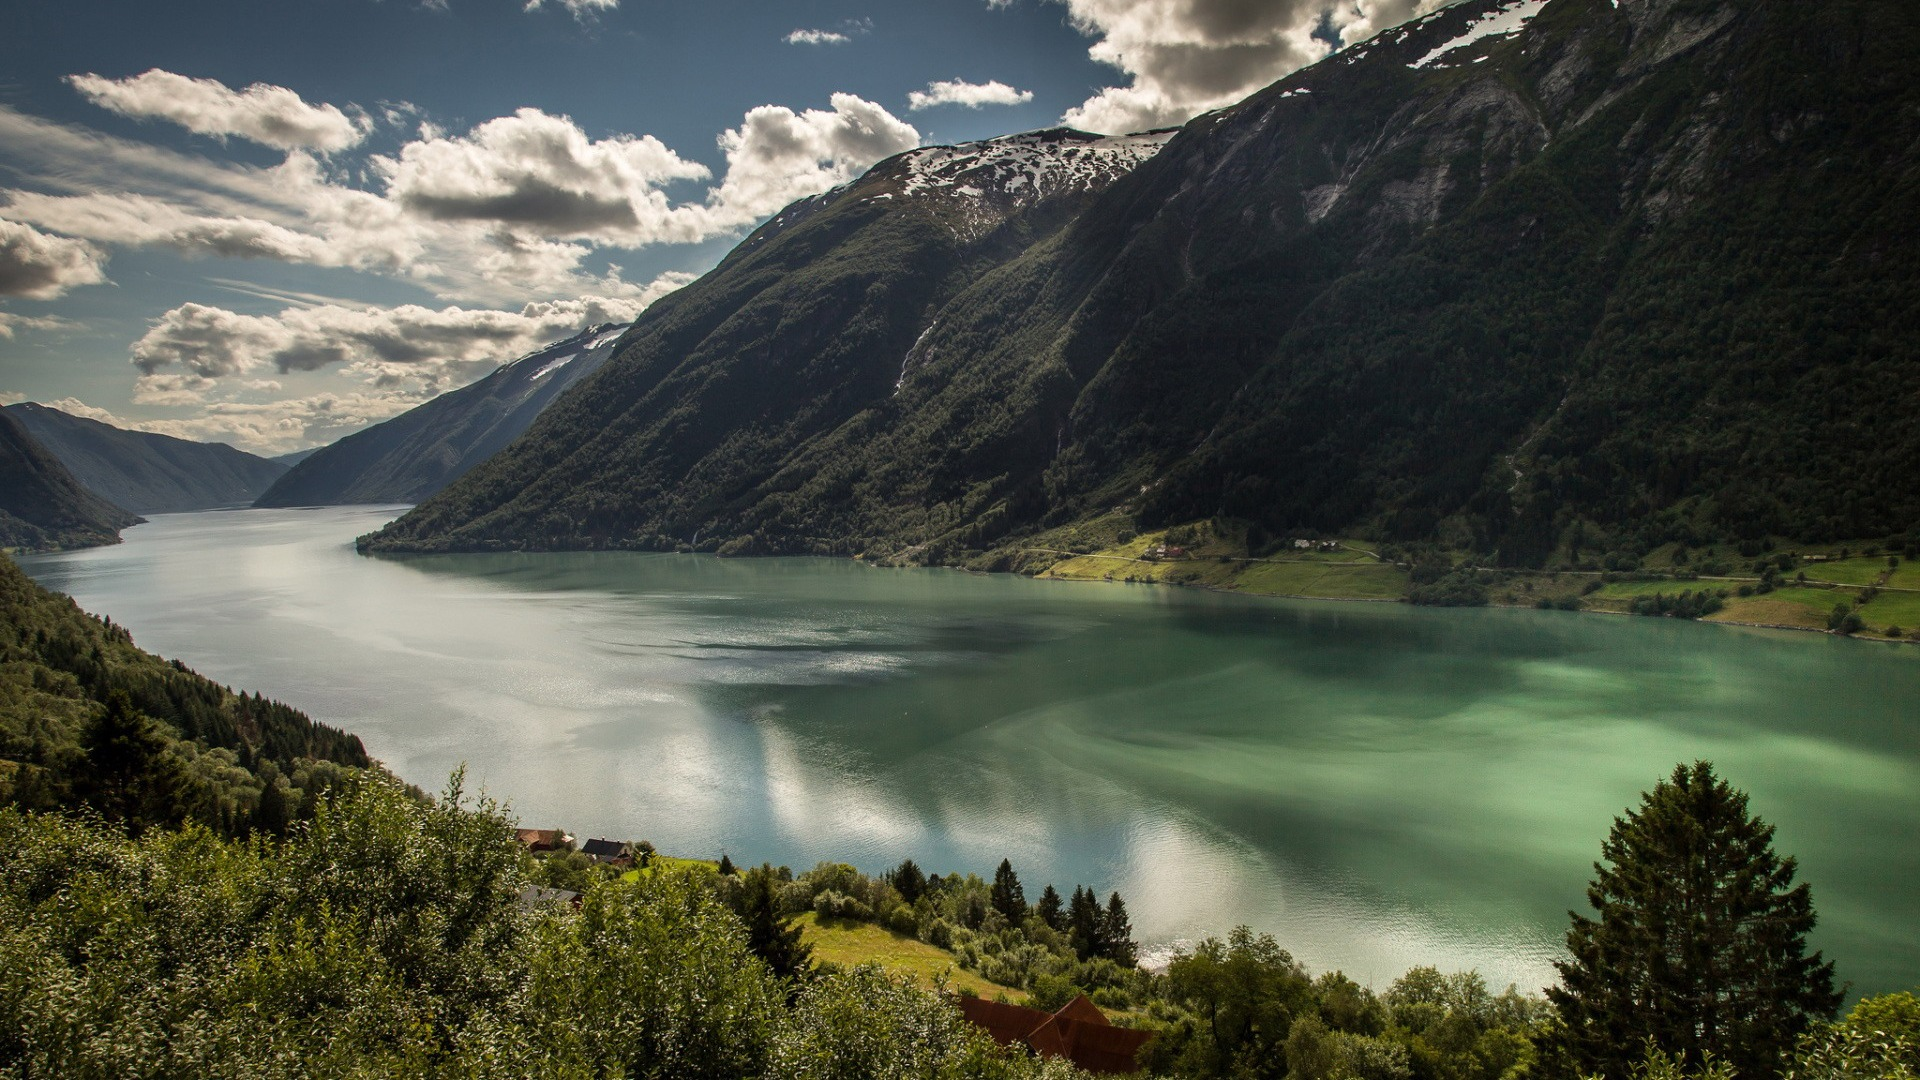 Norway landscape wallpaper 1920x1080 27296 for Landscape images